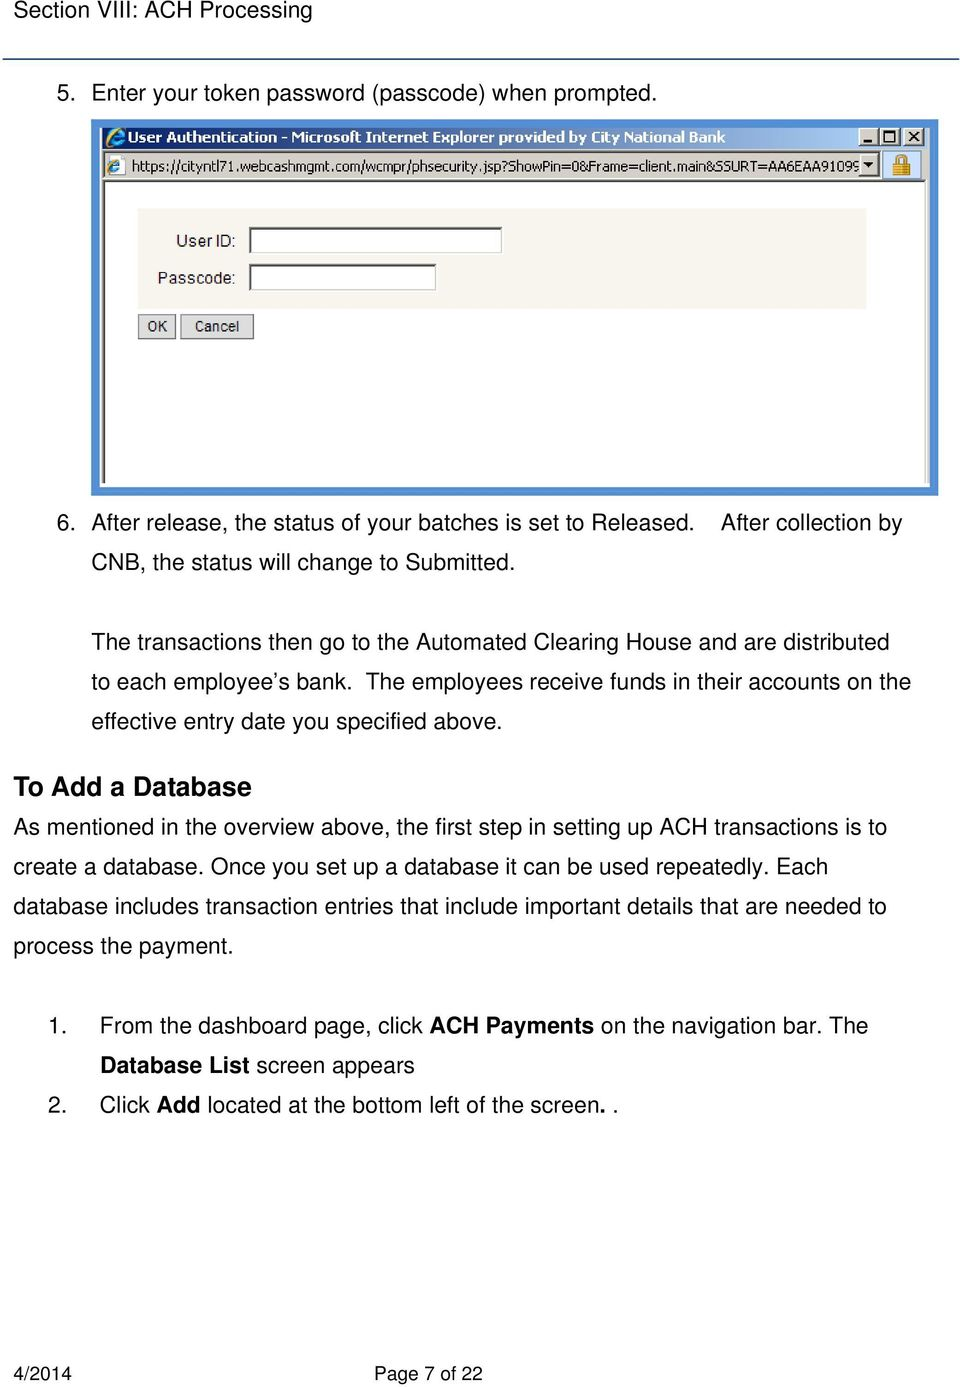 To Add a Database As mentioned in the overview above, the first step in setting up ACH transactions is to create a database. Once you set up a database it can be used repeatedly.